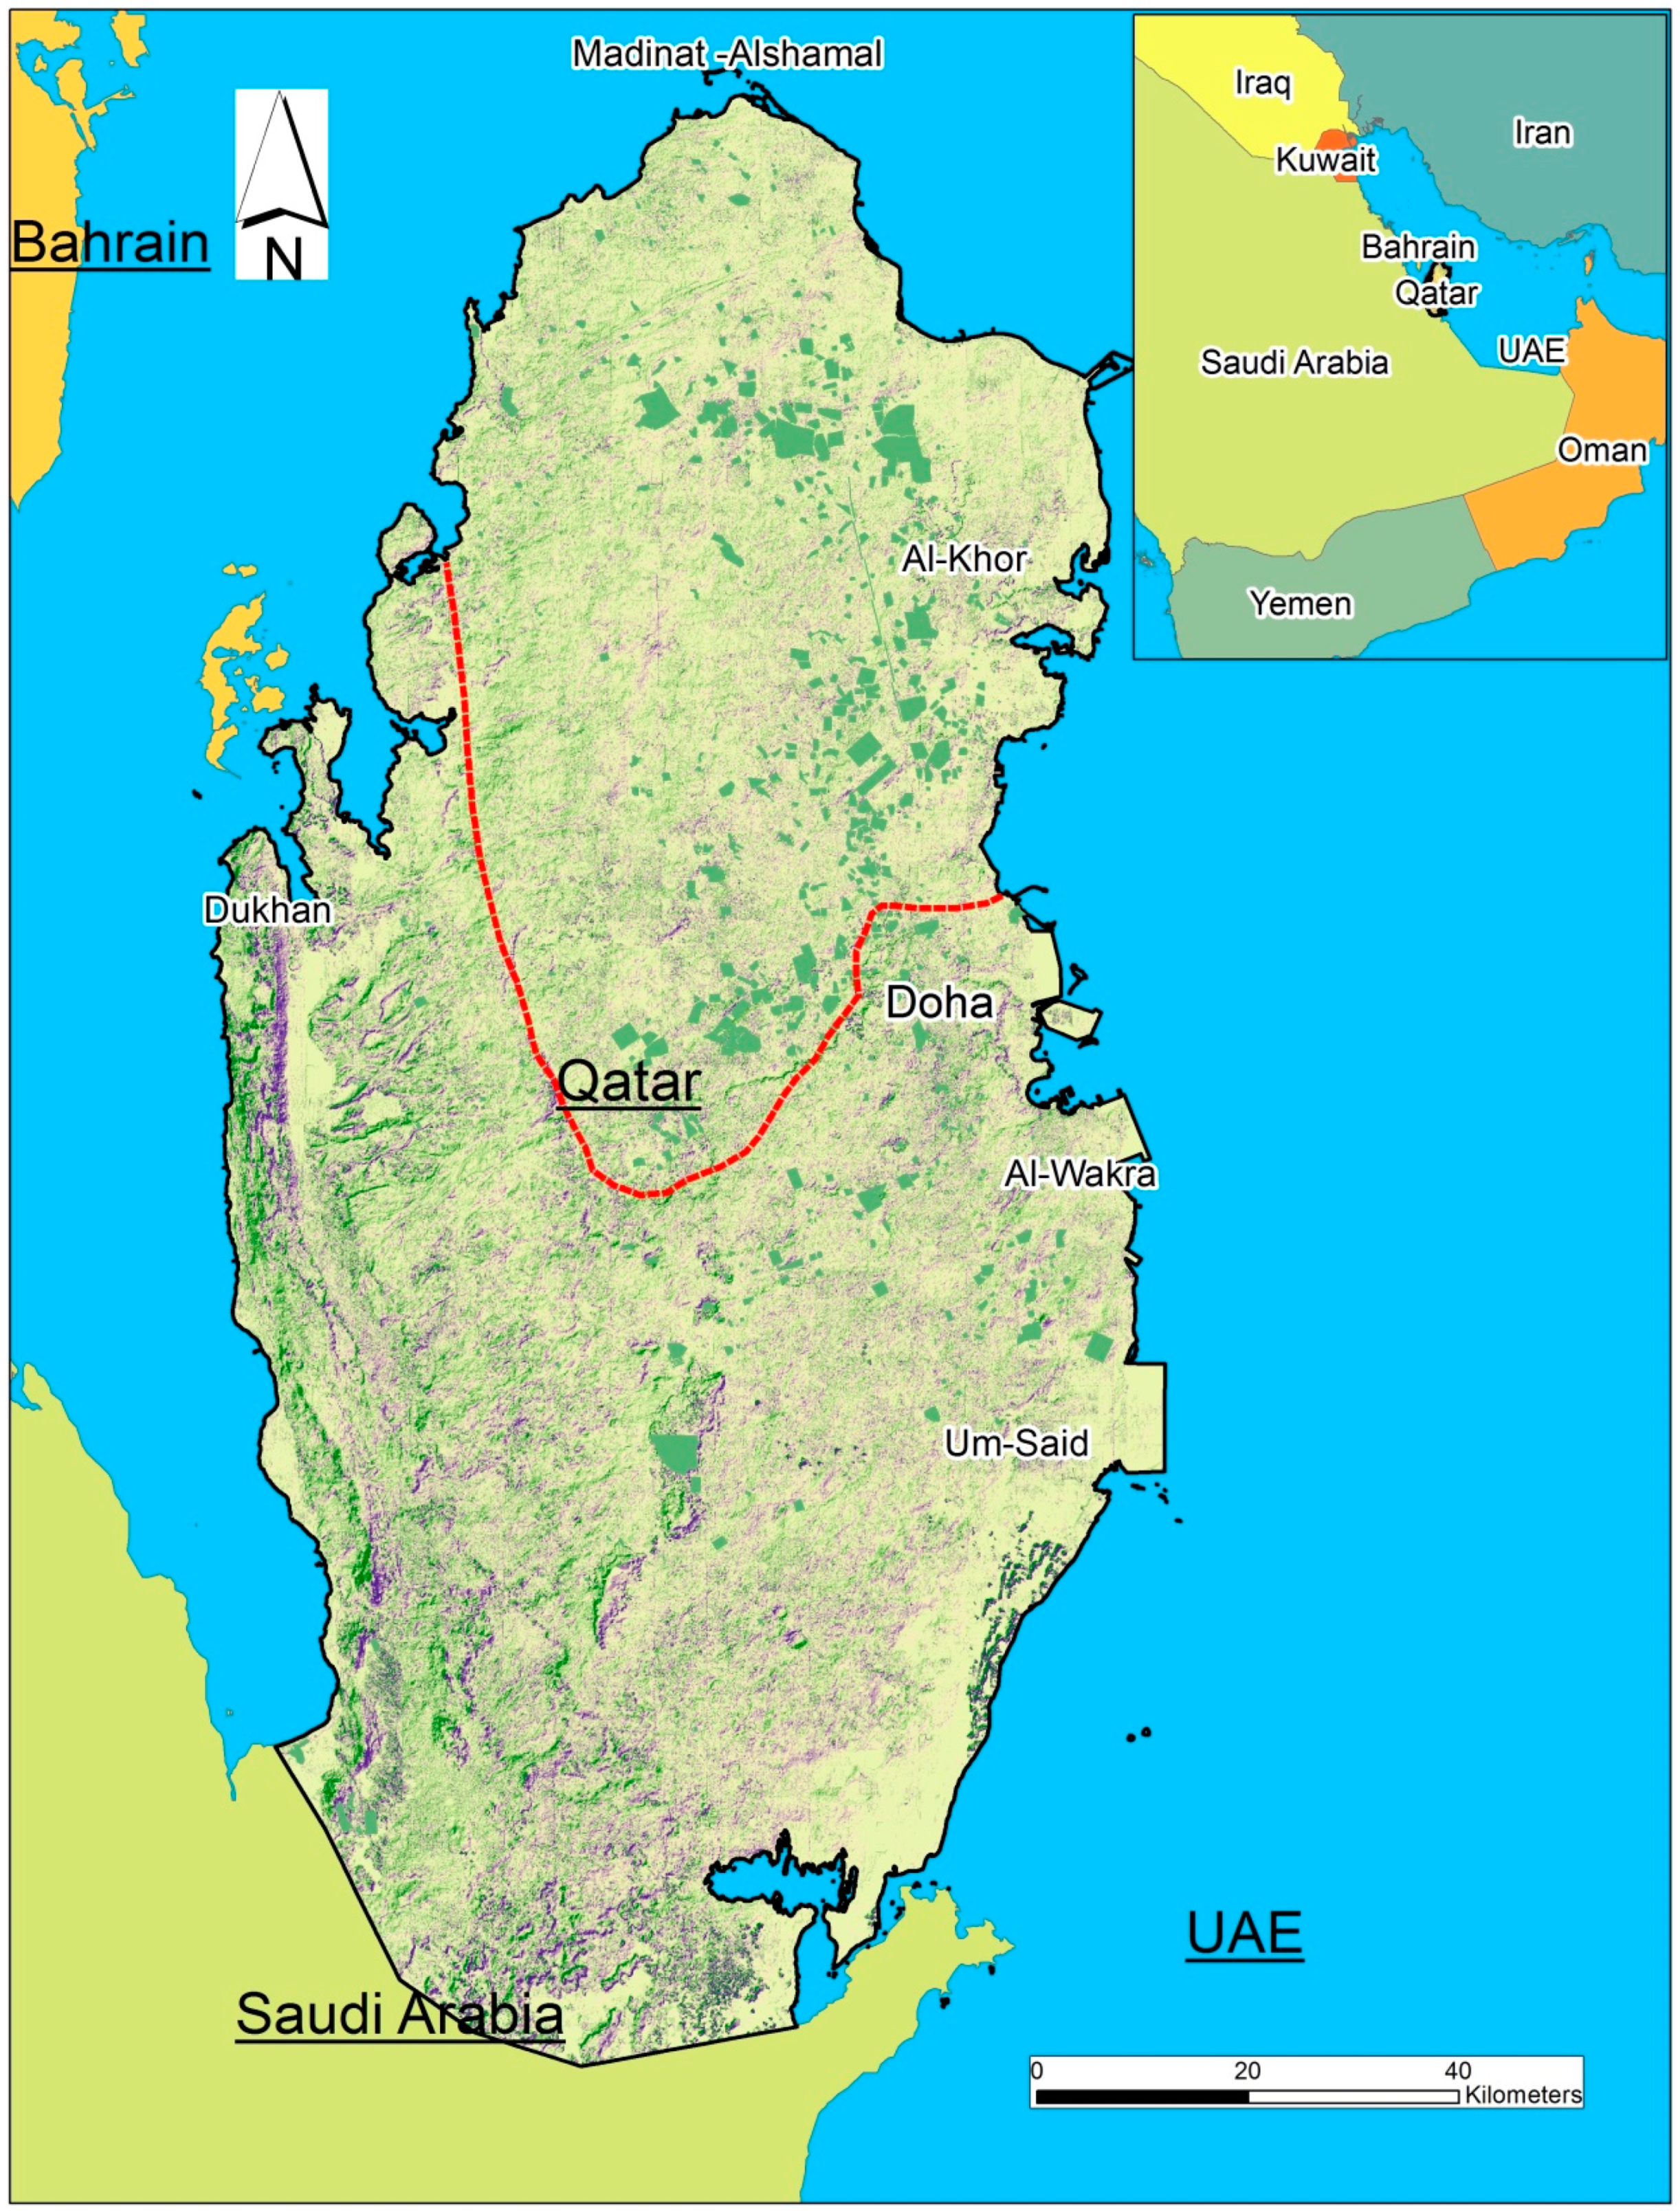 Karst Map Of Bahrain on quaternary map, climate map, aquifer map, dune map, florida continental shelf map, arid map, loess map, great appalachian valley map, lancaster county pa map, brown map, bedrock map, landform map, alluvial fan map, geology map, ginseng iowa map, limestone map, ancient china map, dougherty plain map, green map, miller map,